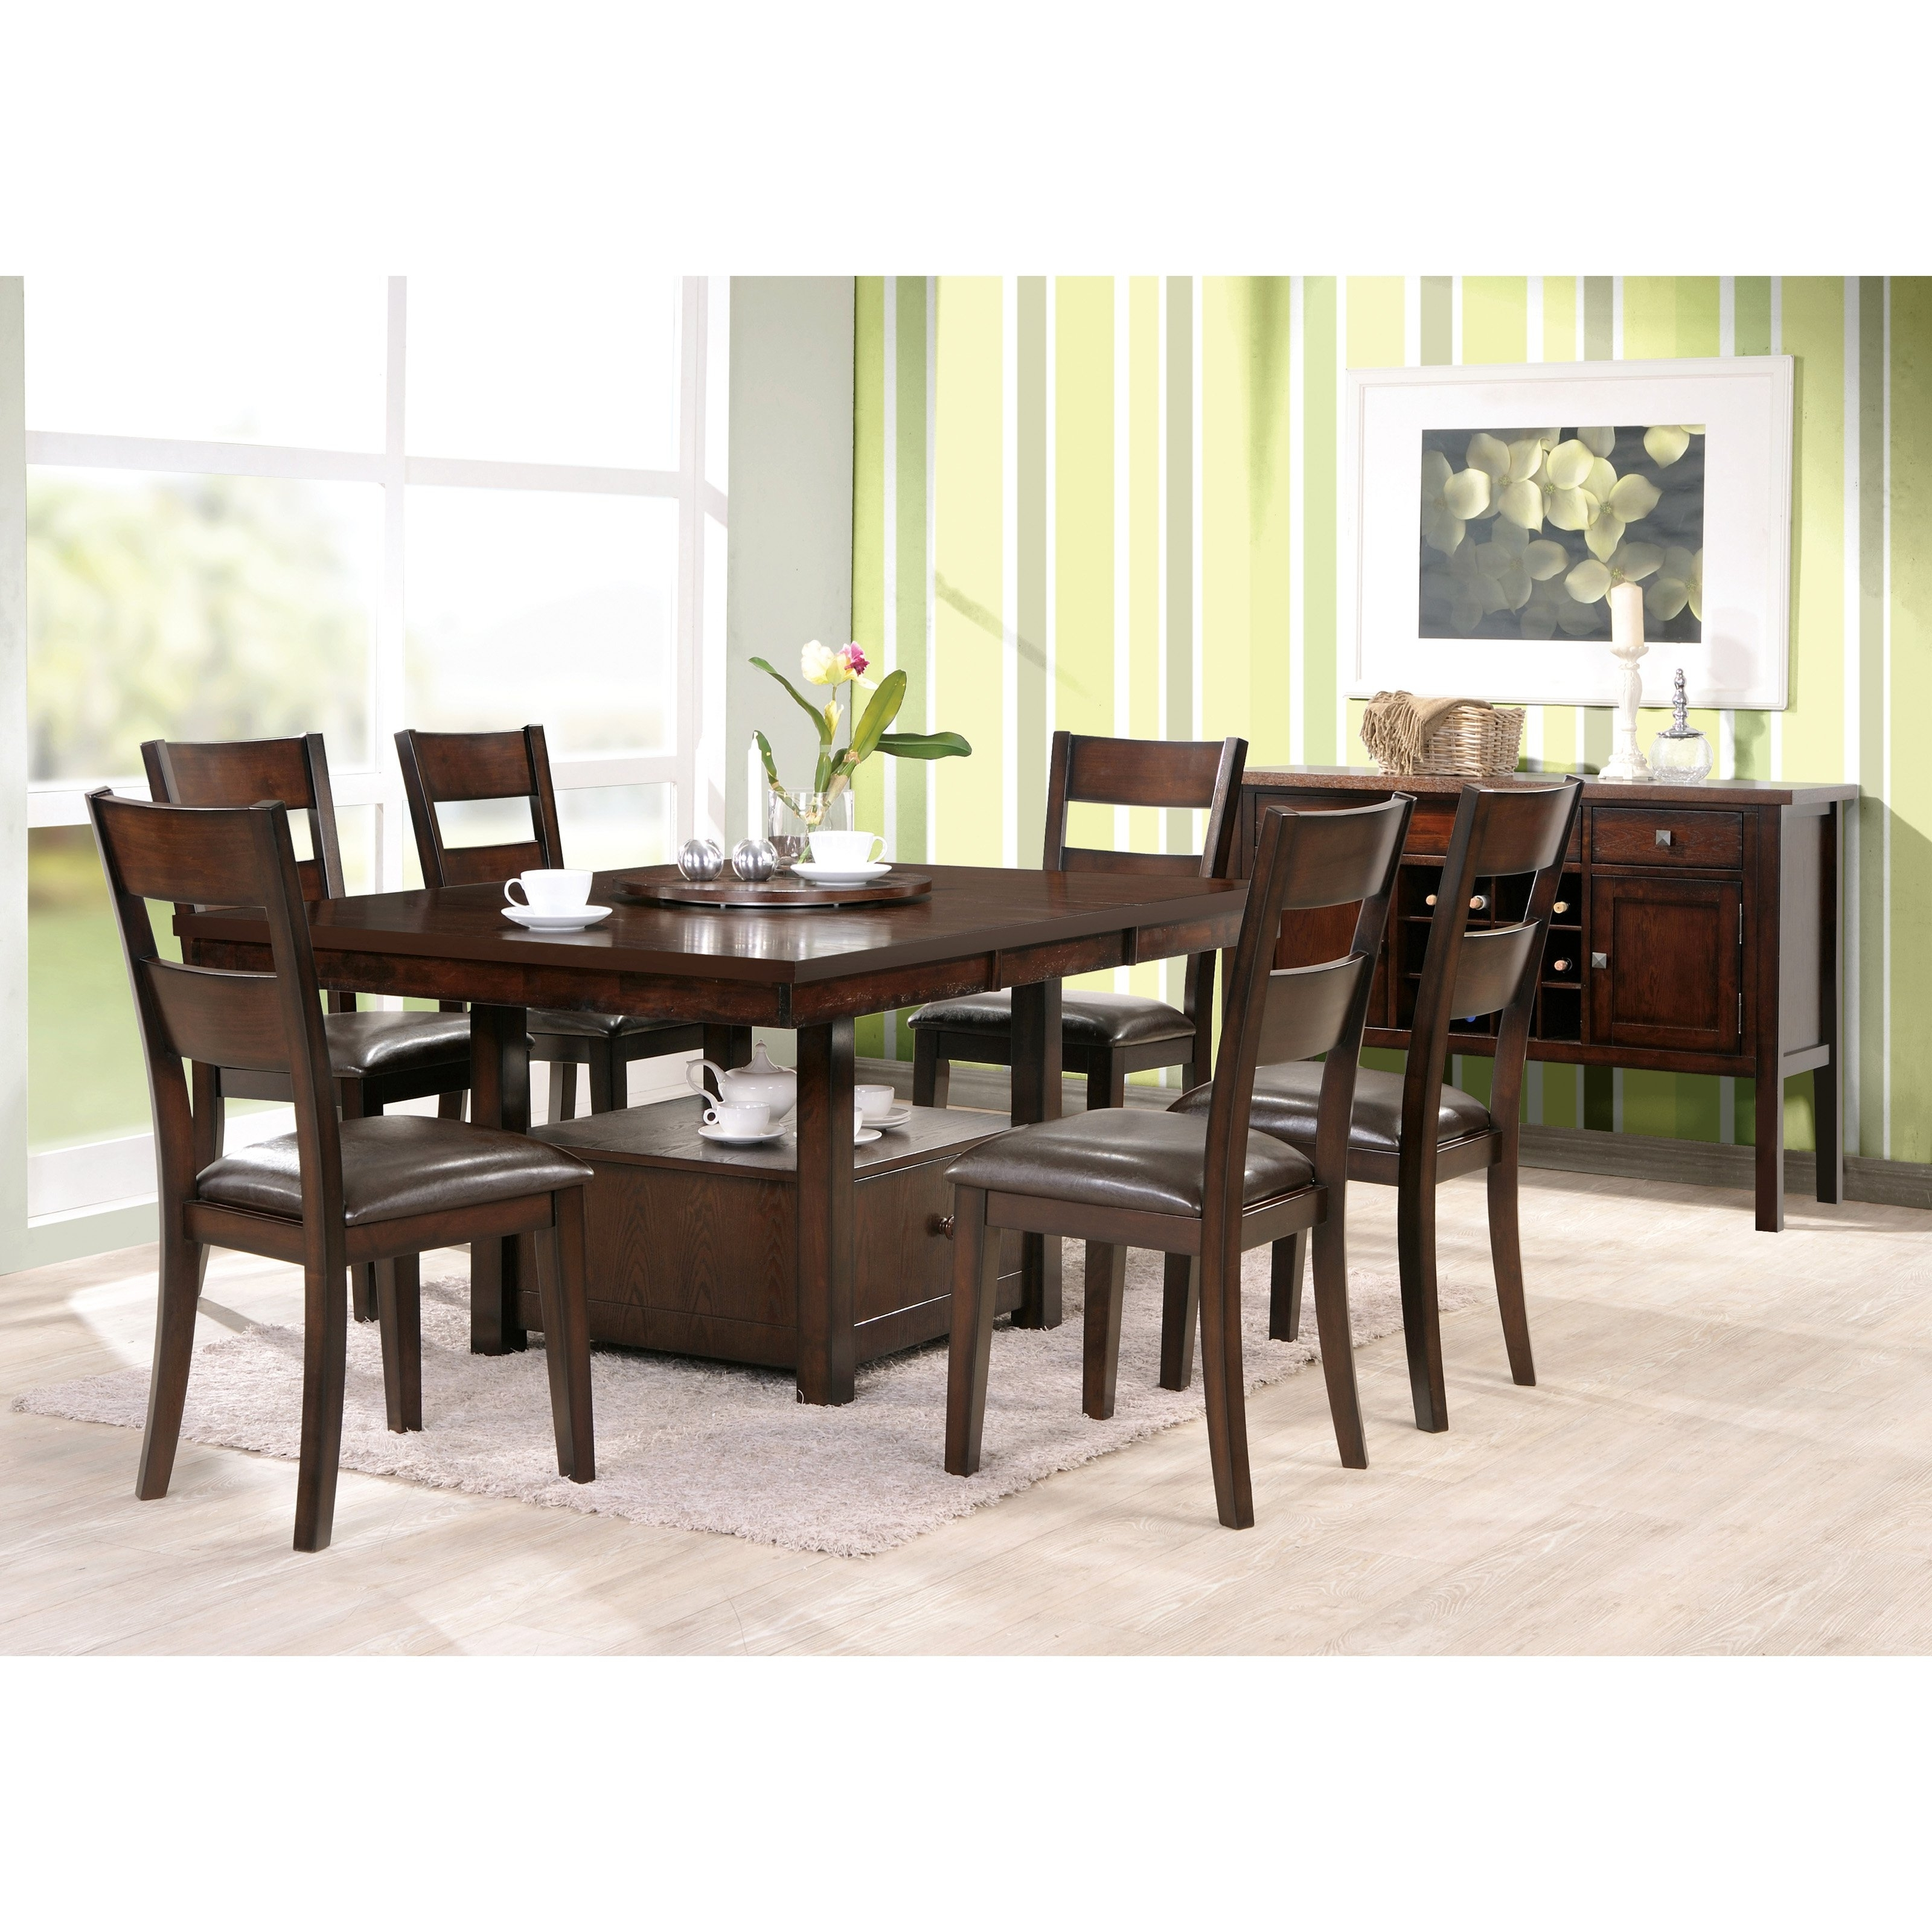 Rectangle Dark Brown Wooden Dining Table With Drawers Addeddark For Trendy Dark Brown Wood Dining Tables (View 24 of 25)